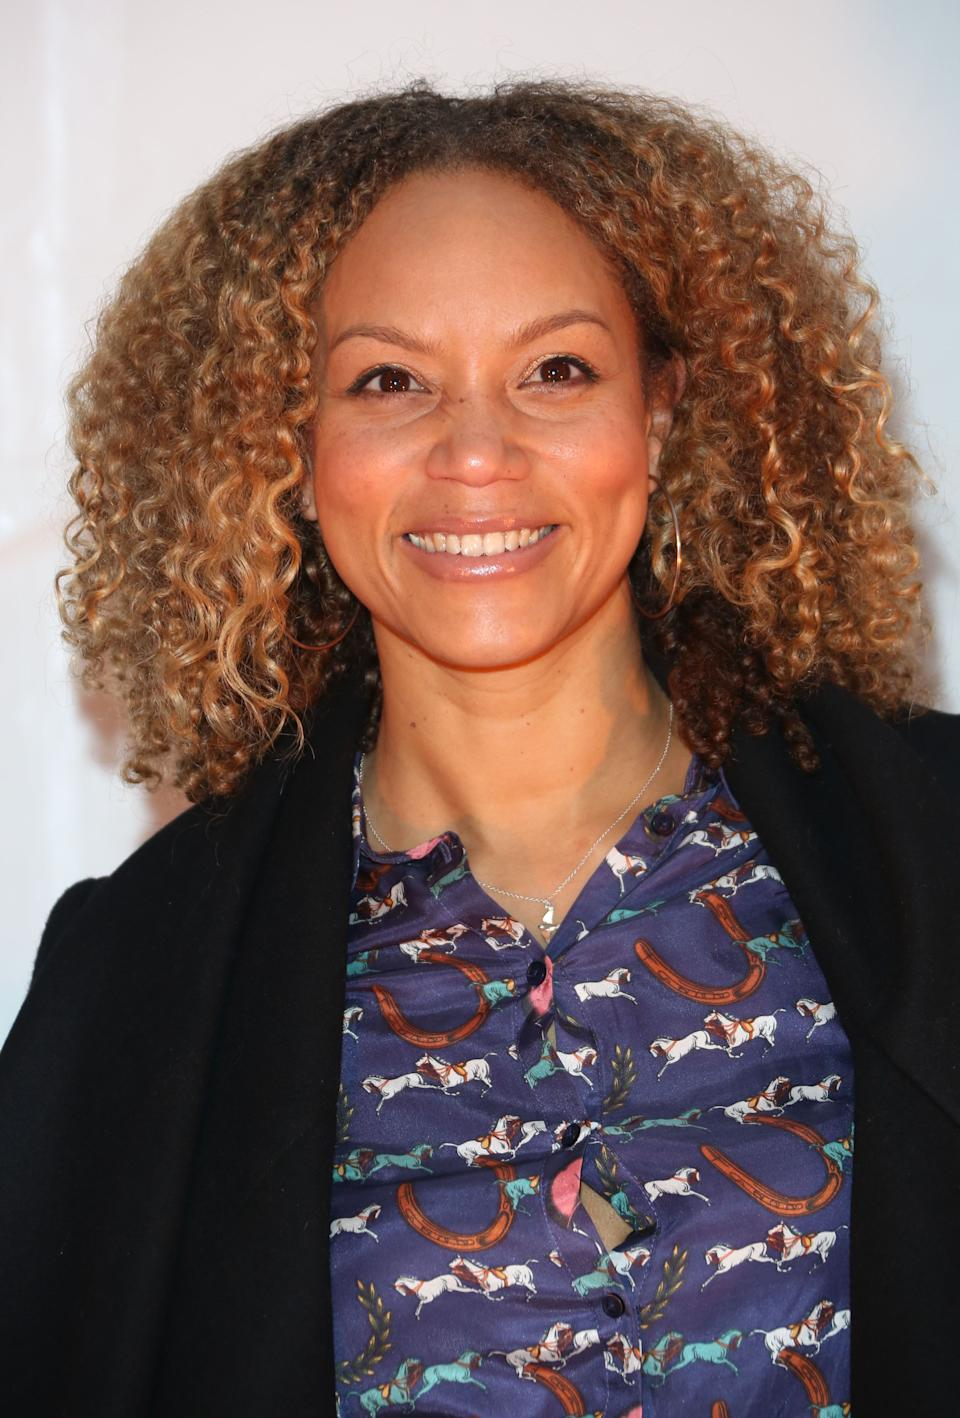 Angela Griffin is well-known for playing Corrie's Fiona Middleton in the '90s, but before that she made a brief appearance in 'Emmerdale', starring in two episodes.